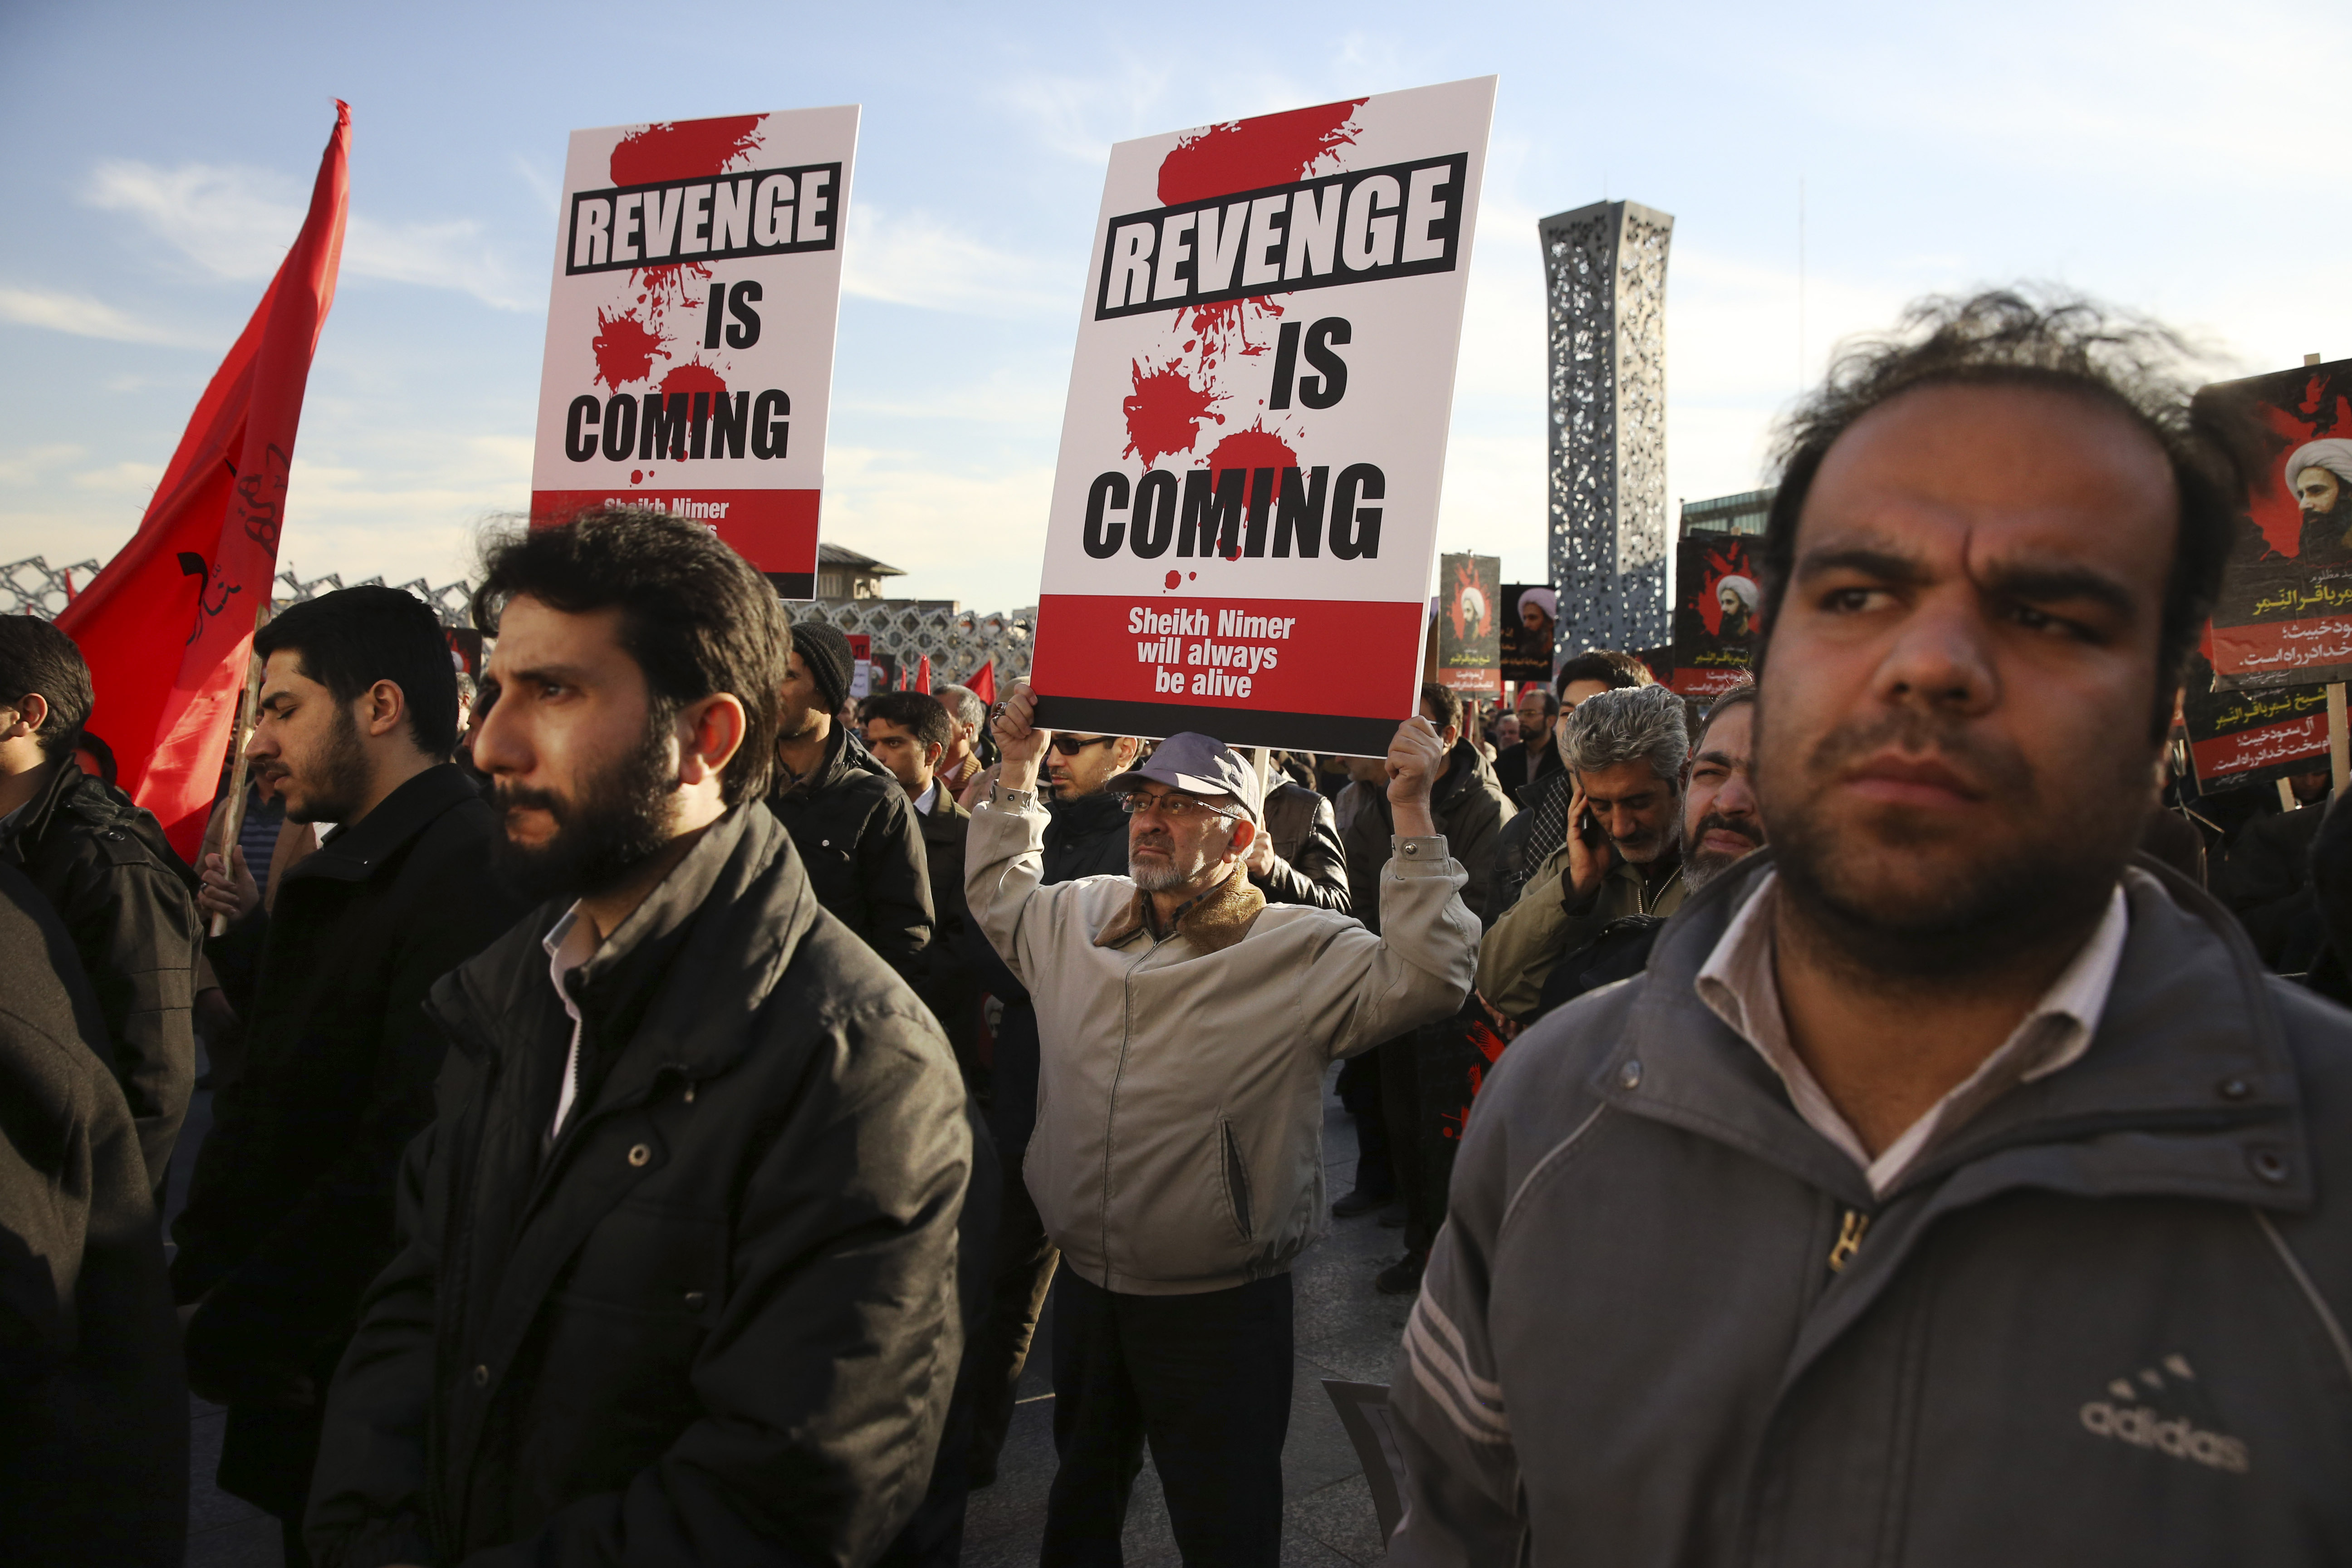 Iranian demonstrators hold anti-Saudi placards in a rally to protest the execution by Saudi Arabia last week of Sheikh Nimr al-Nimr, a prominent opposition Saudi Shiite cleric, in Tehran, Iran, Jan. 4, 2016.